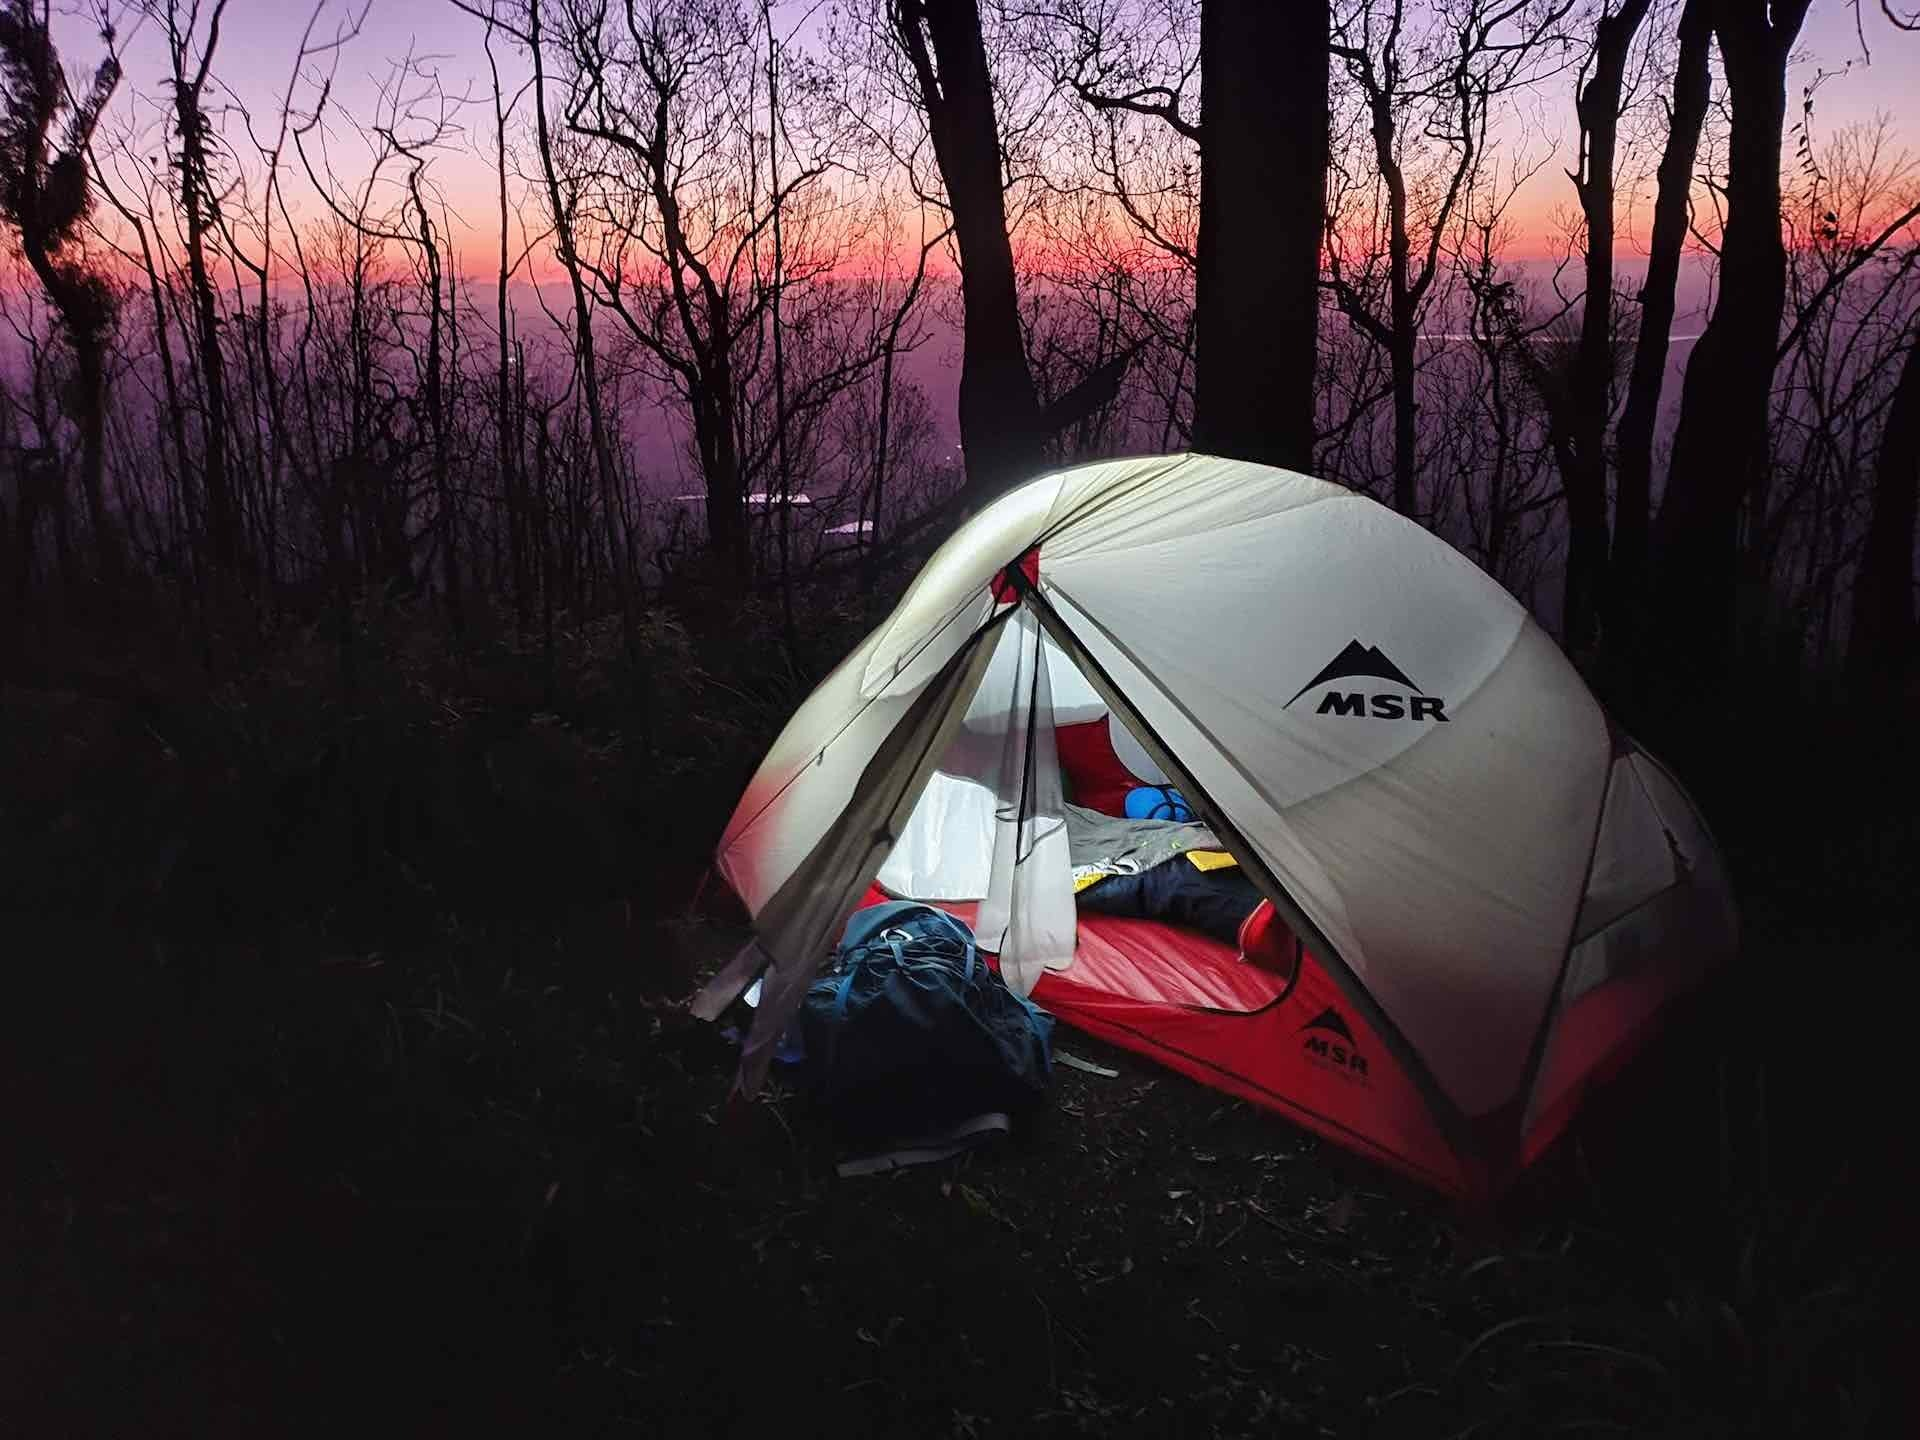 Laidley Creek Camping, overnight hikes near brisbane, Photo by Mitchell Quinn, sunset, tent, camping, MSR, main range national park, south east queensland